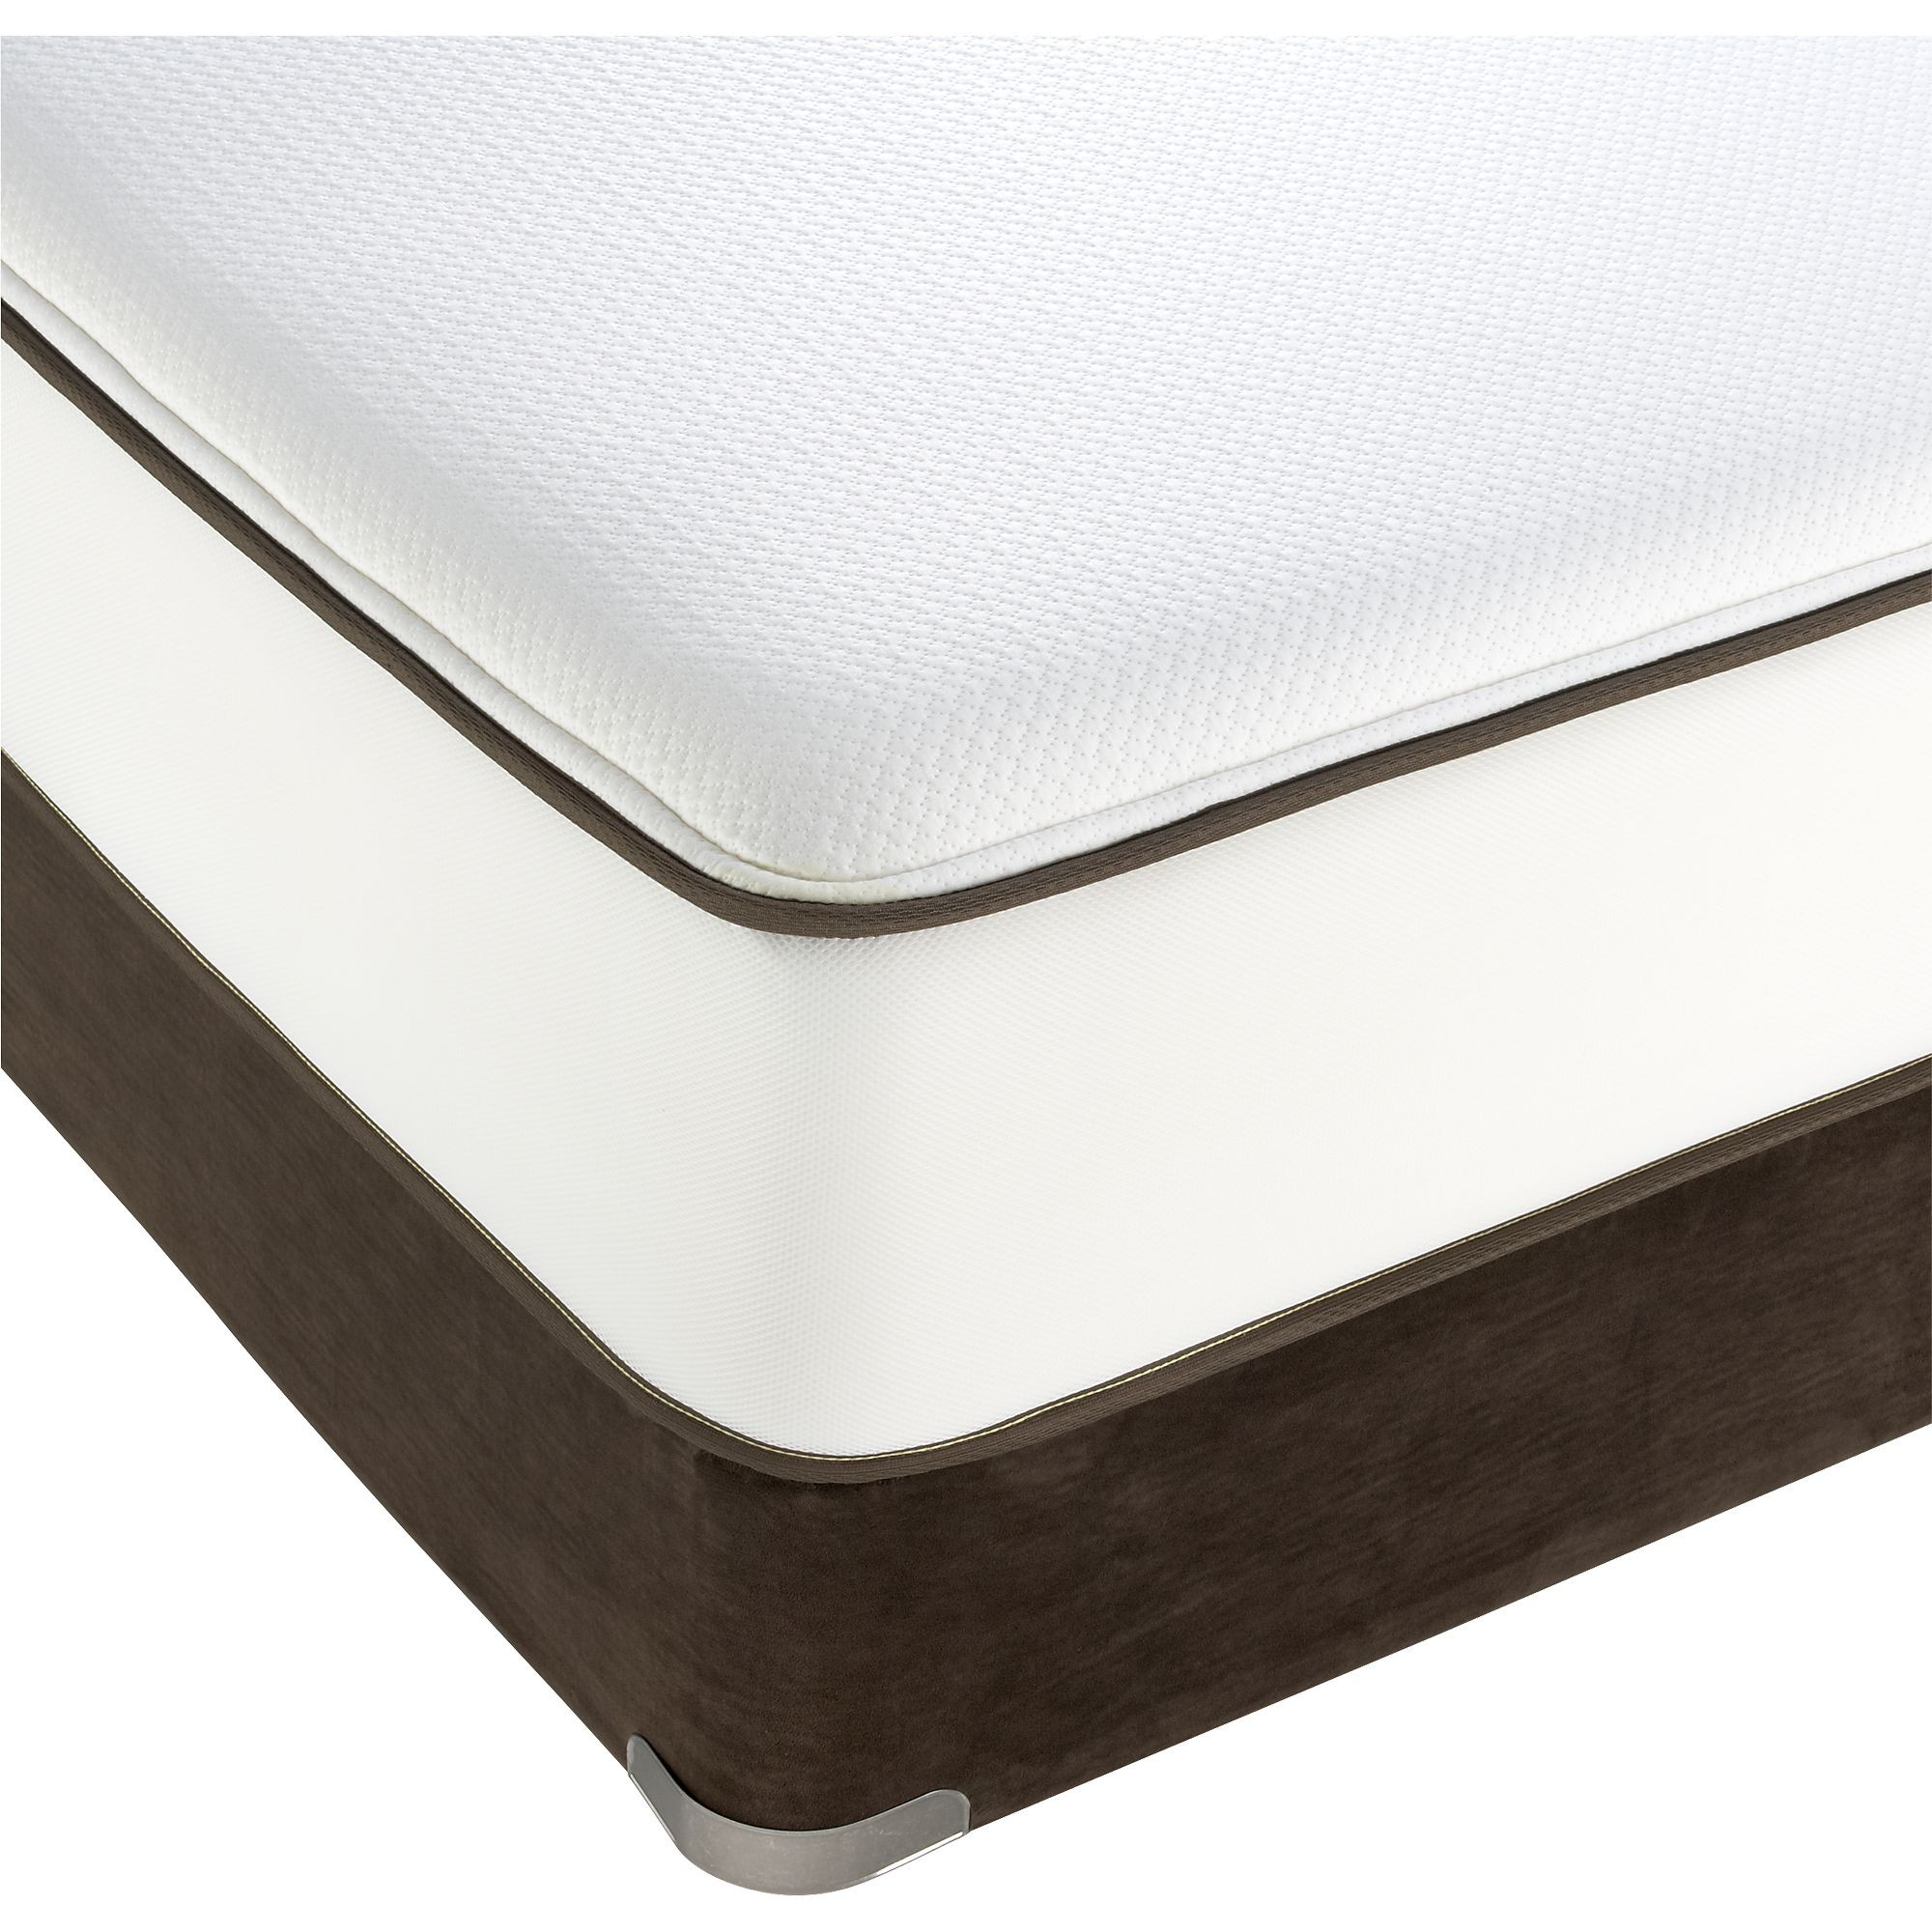 Simmons Beautyrest World Class Mattress | Beautyrest Simmons | Simmons Beautyrest Mattress